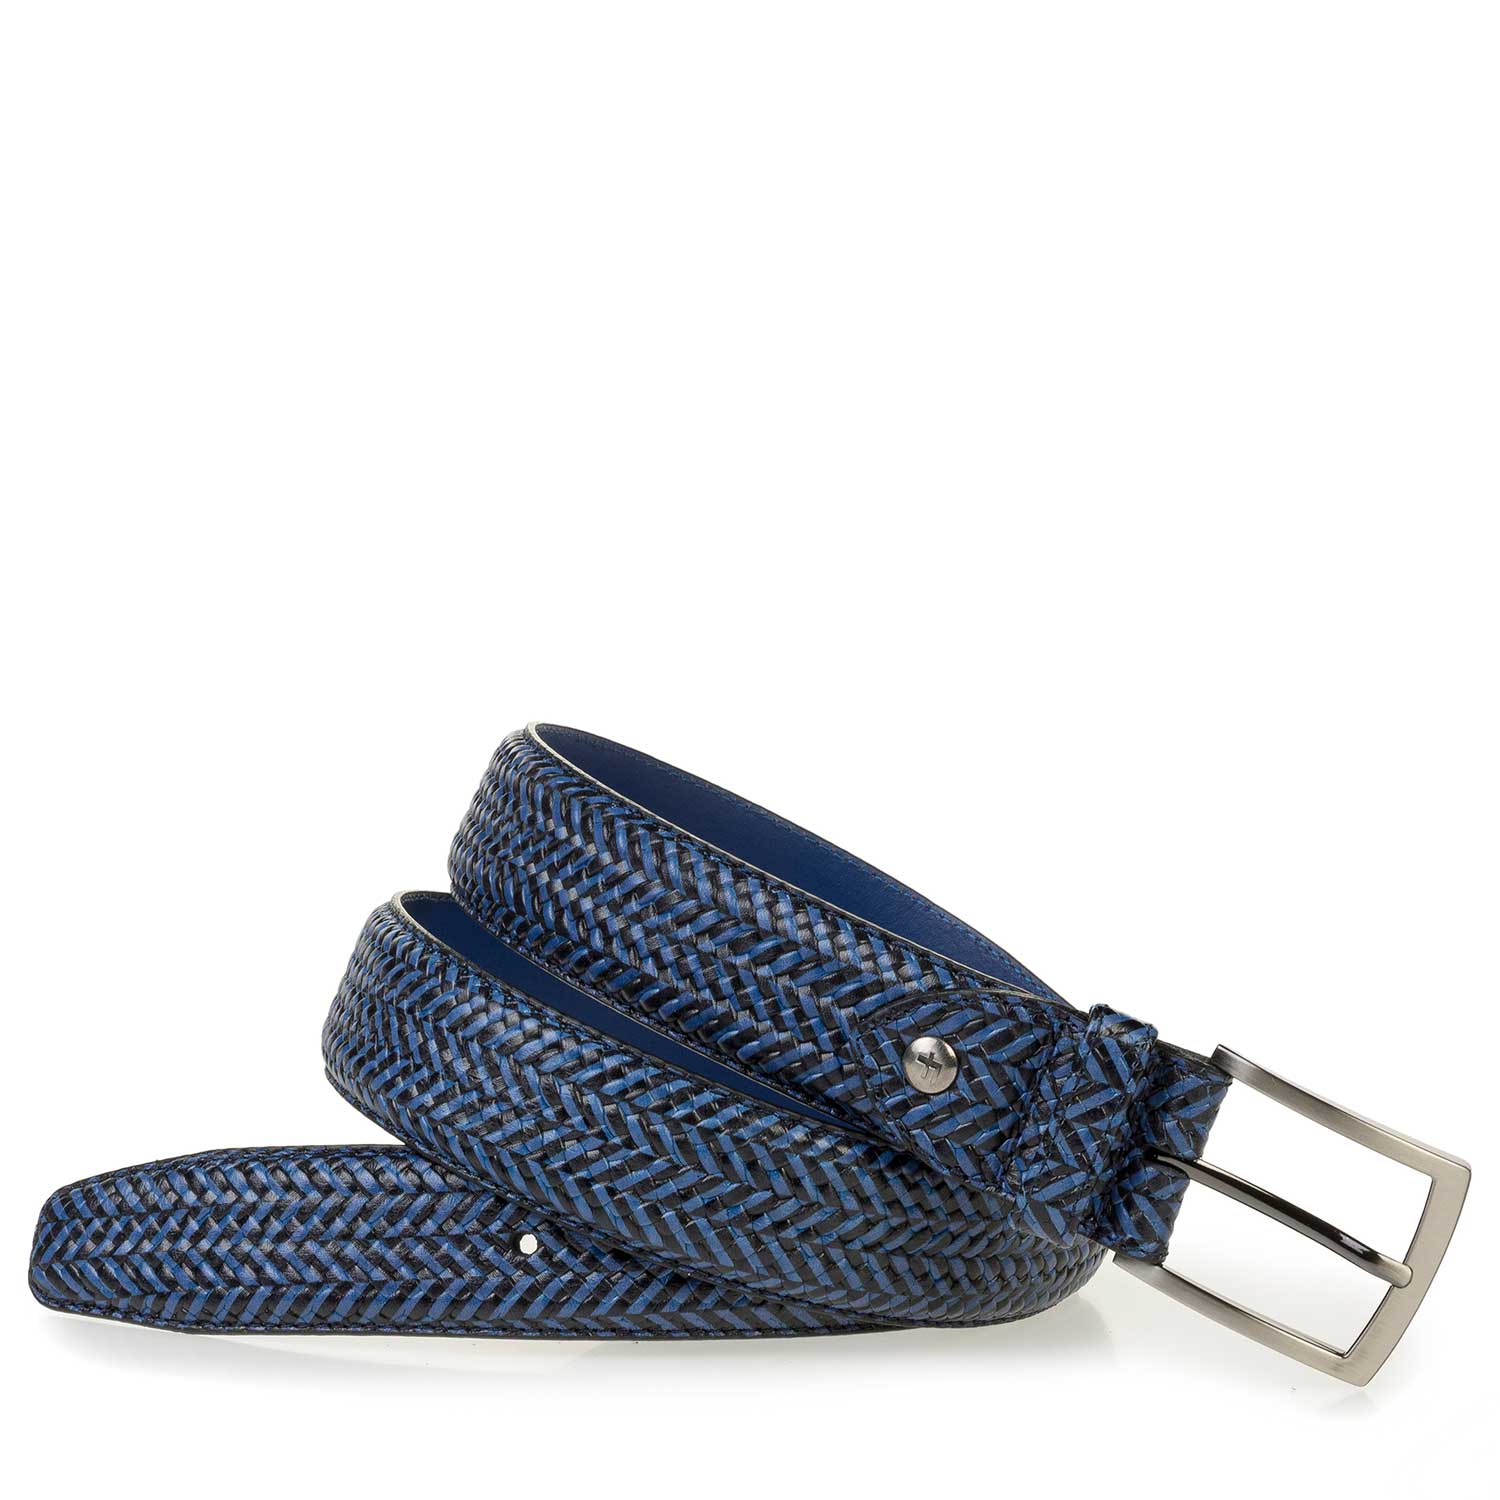 75200/52 - Blue calf leather belt with a herringbone pattern